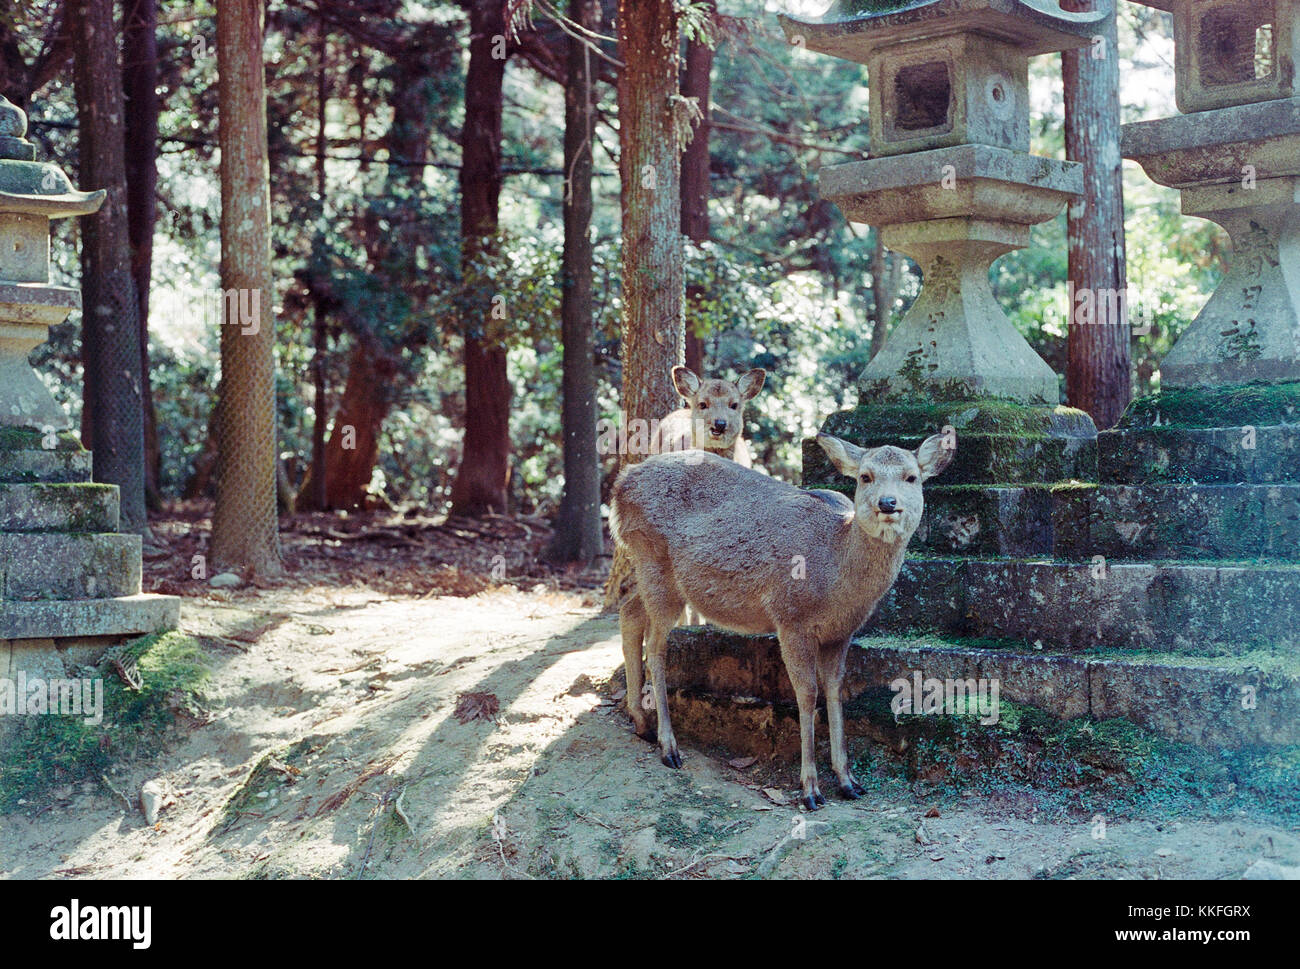 Two Deer in brightly lit forest in Nara, Japan looking friendly at camera - Stock Image